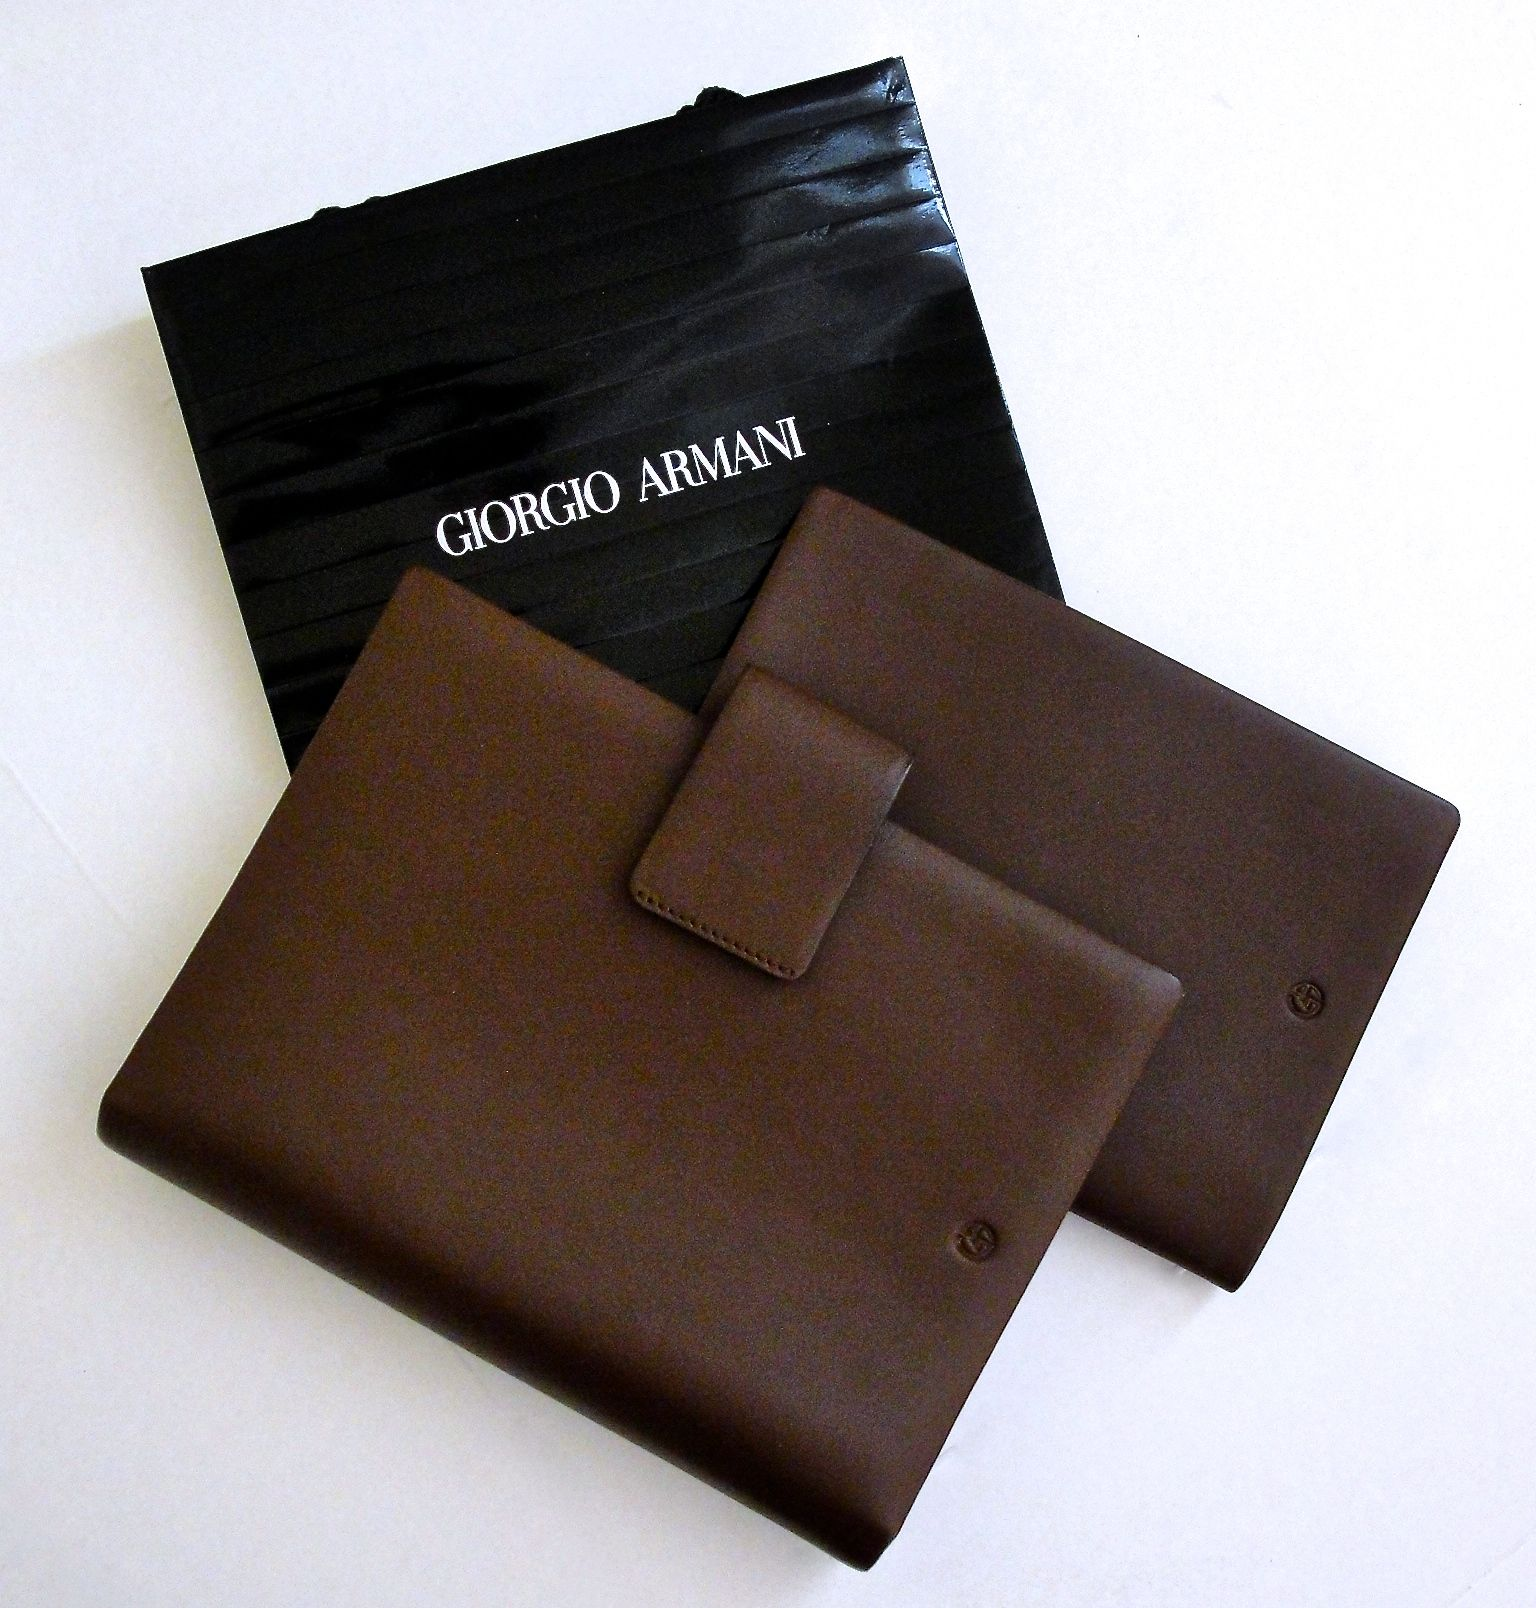 Giorgio Armani SET Leather Notebook Passport holder   wallet with card  holder   Luxury   Vintage Madrid a4fb11a79b